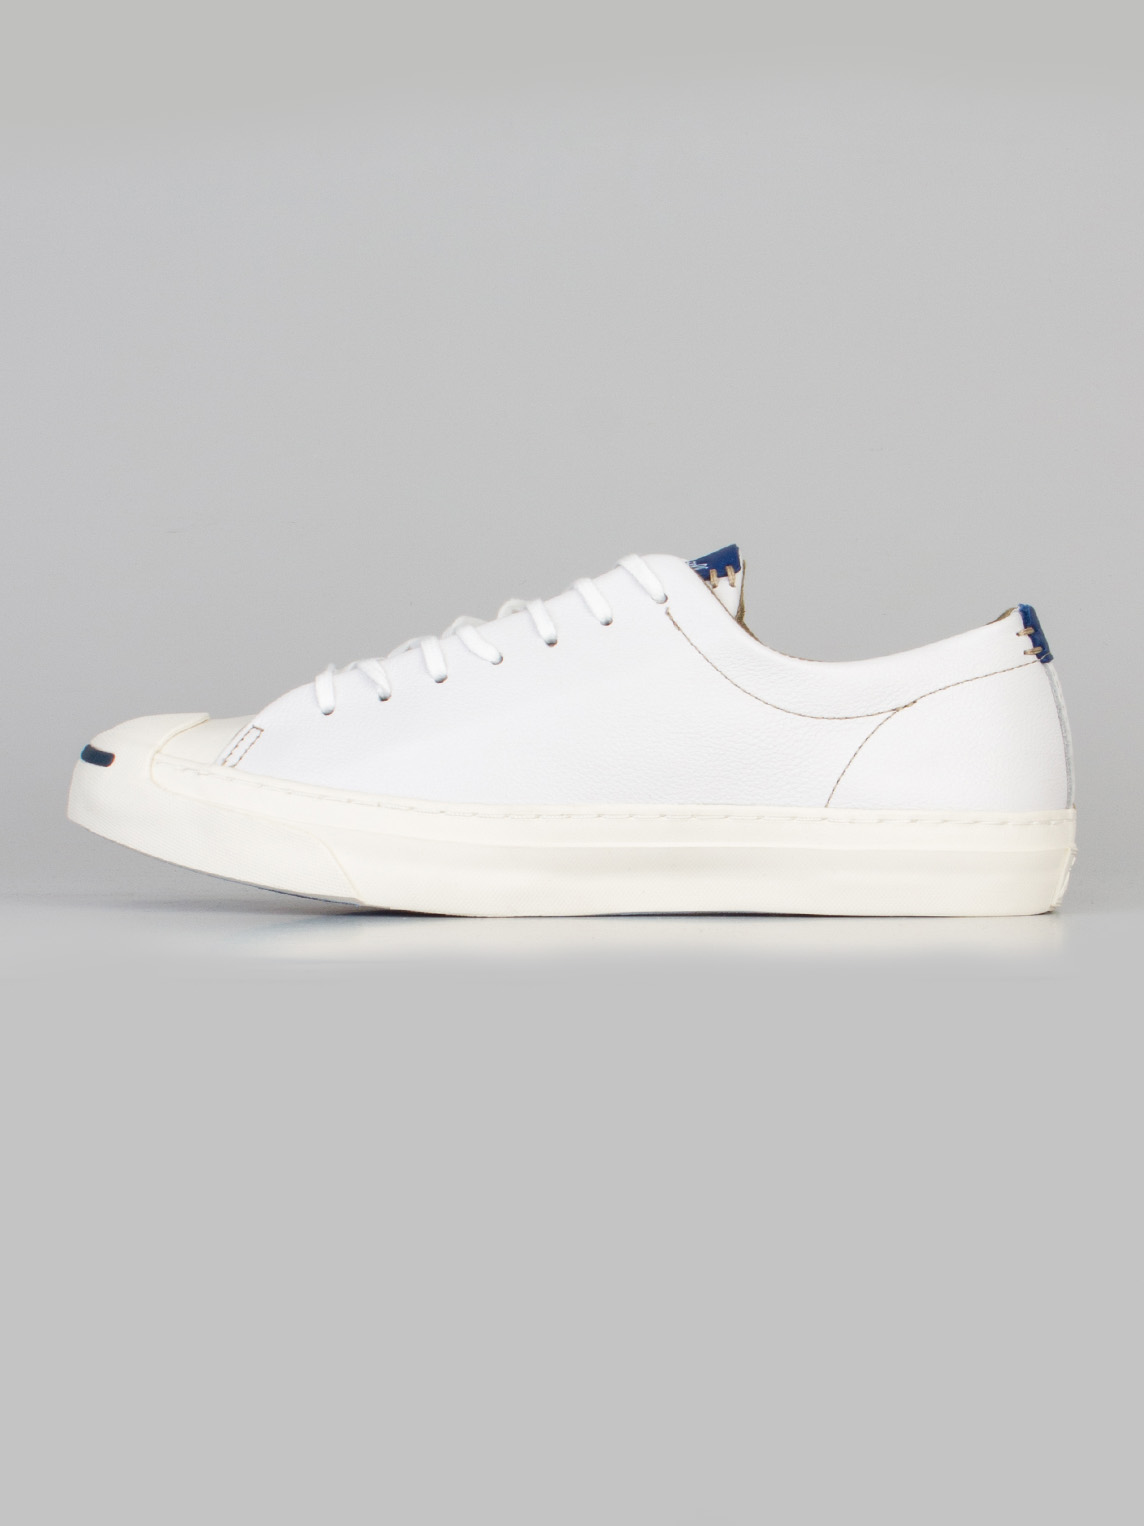 0b715304f428 ... Jack Purcell logo embossed in white and a contrasting blue leather heel  panel. The logo is also on the reverse of the heel in cream with a chunky  cream ...